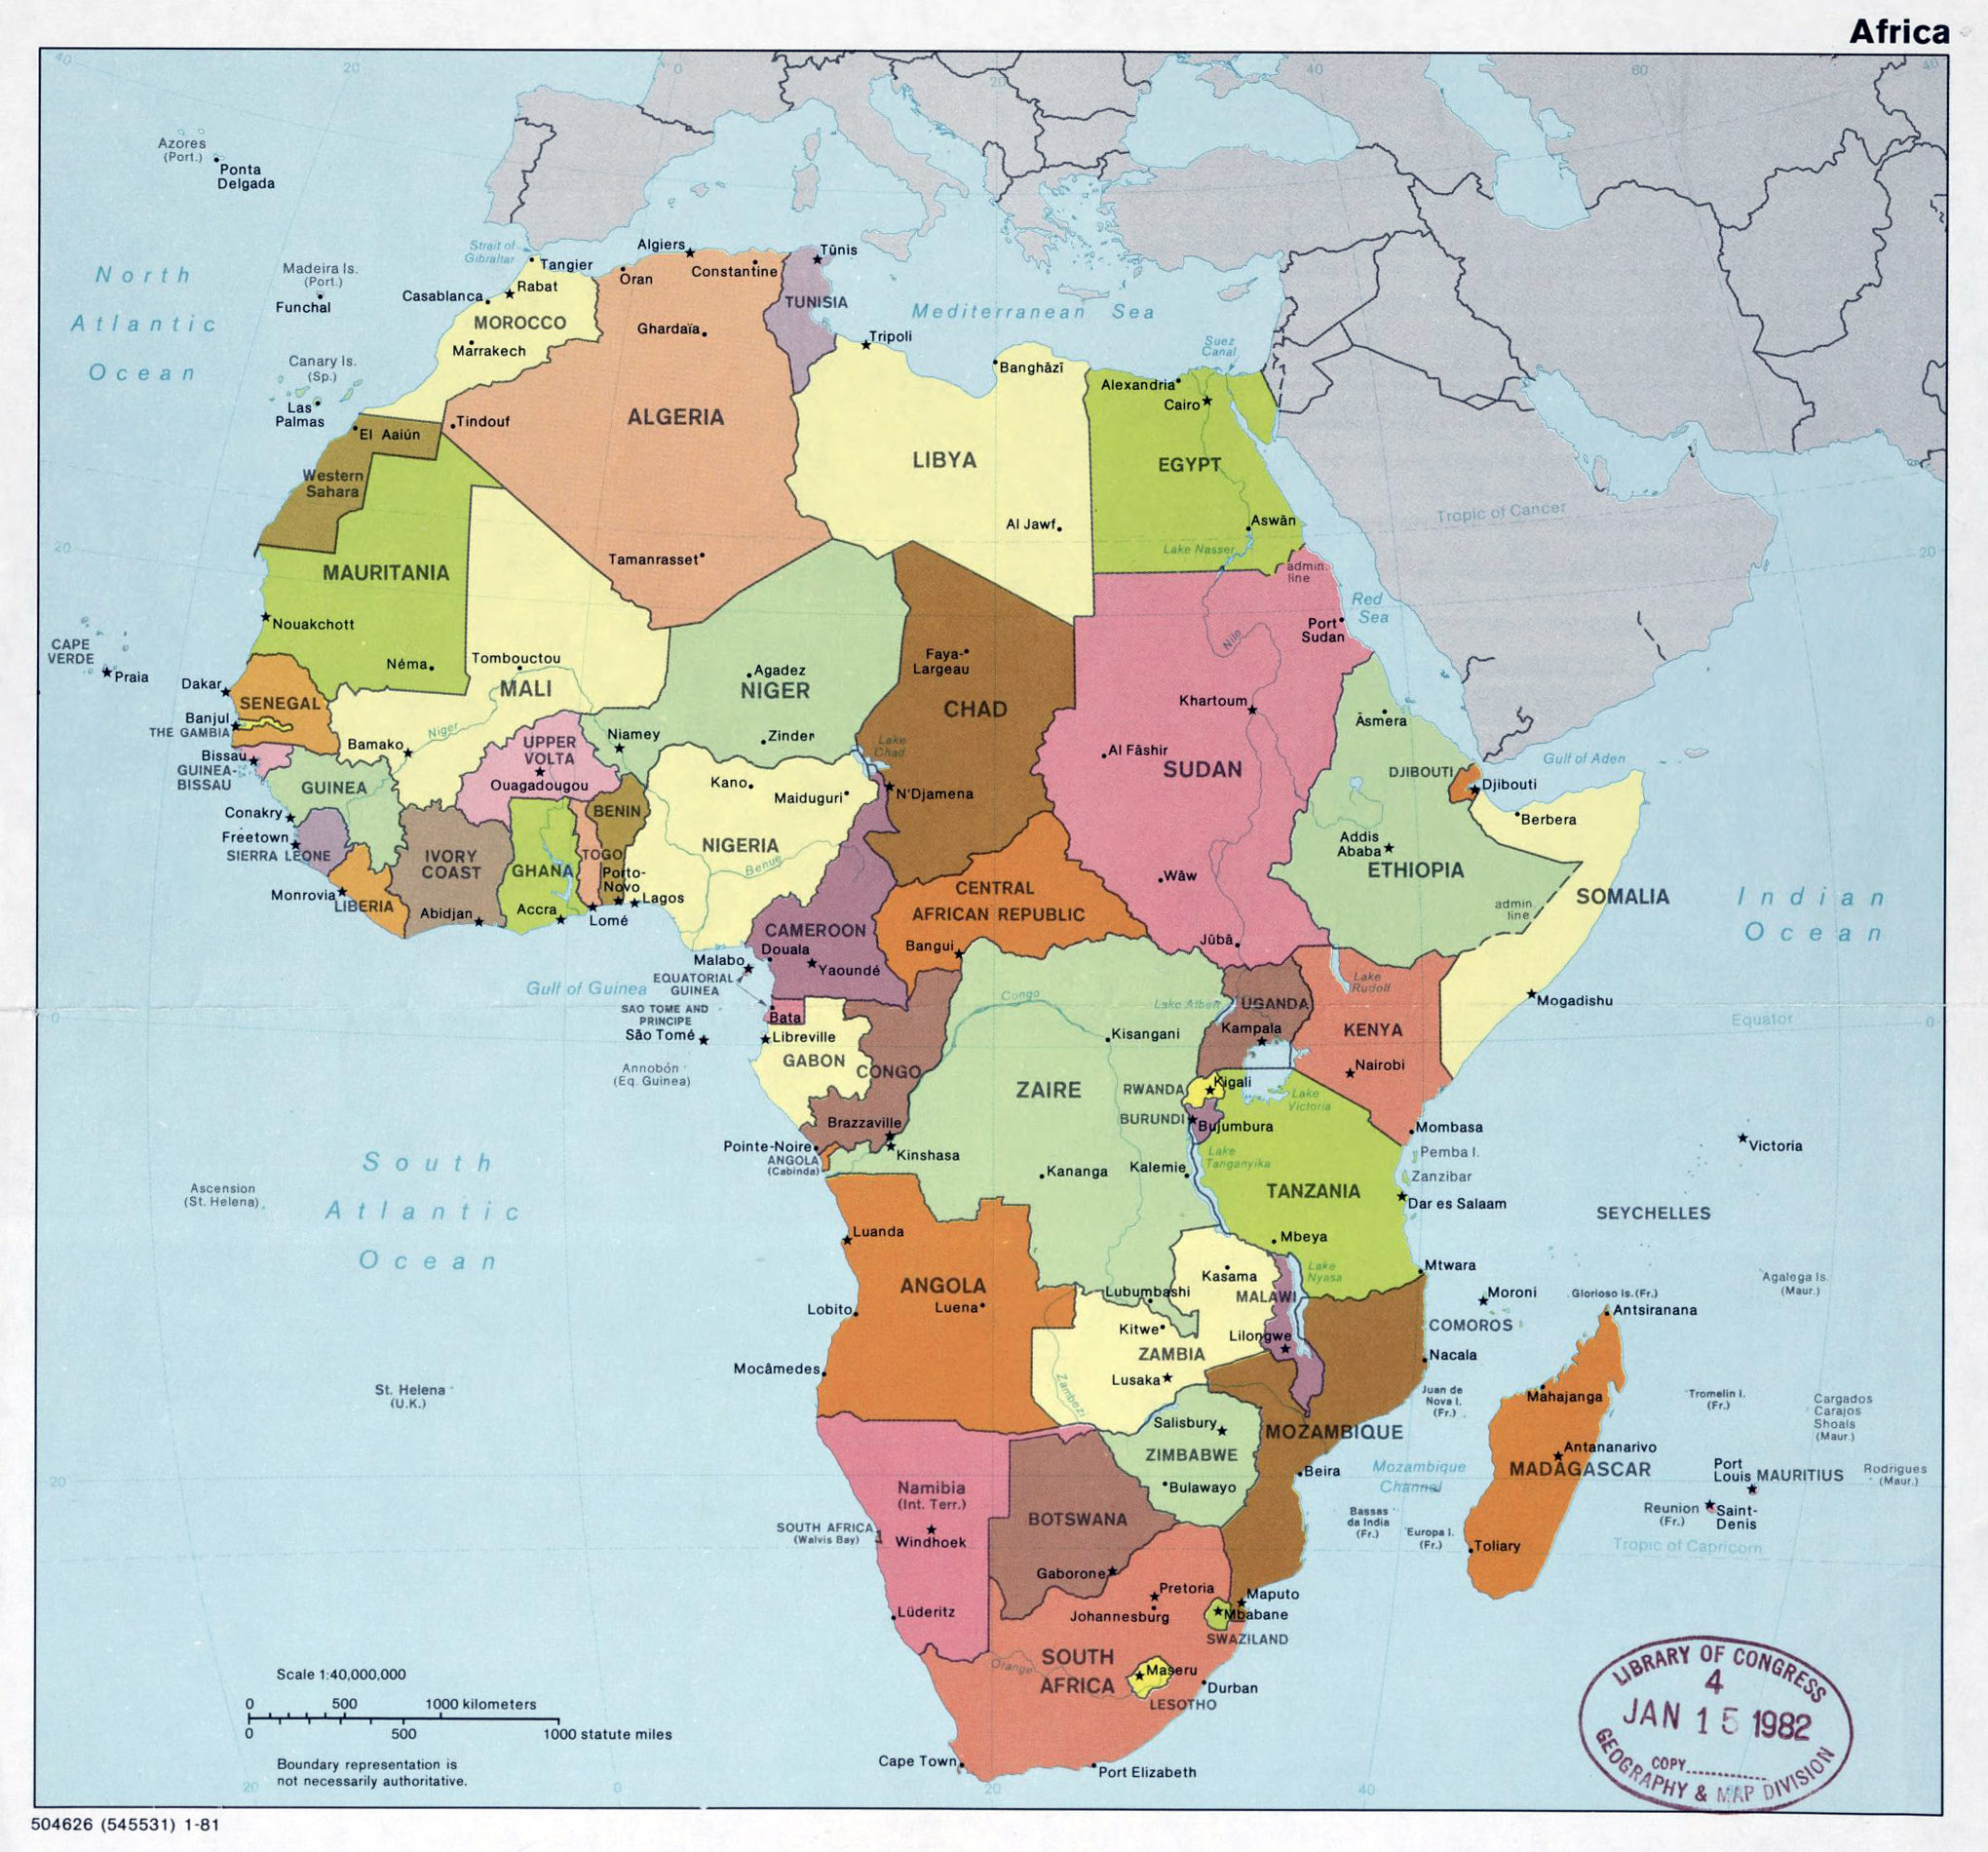 Map Of Africa 2017 Pictures to Pin on Pinterest - PinsDaddy